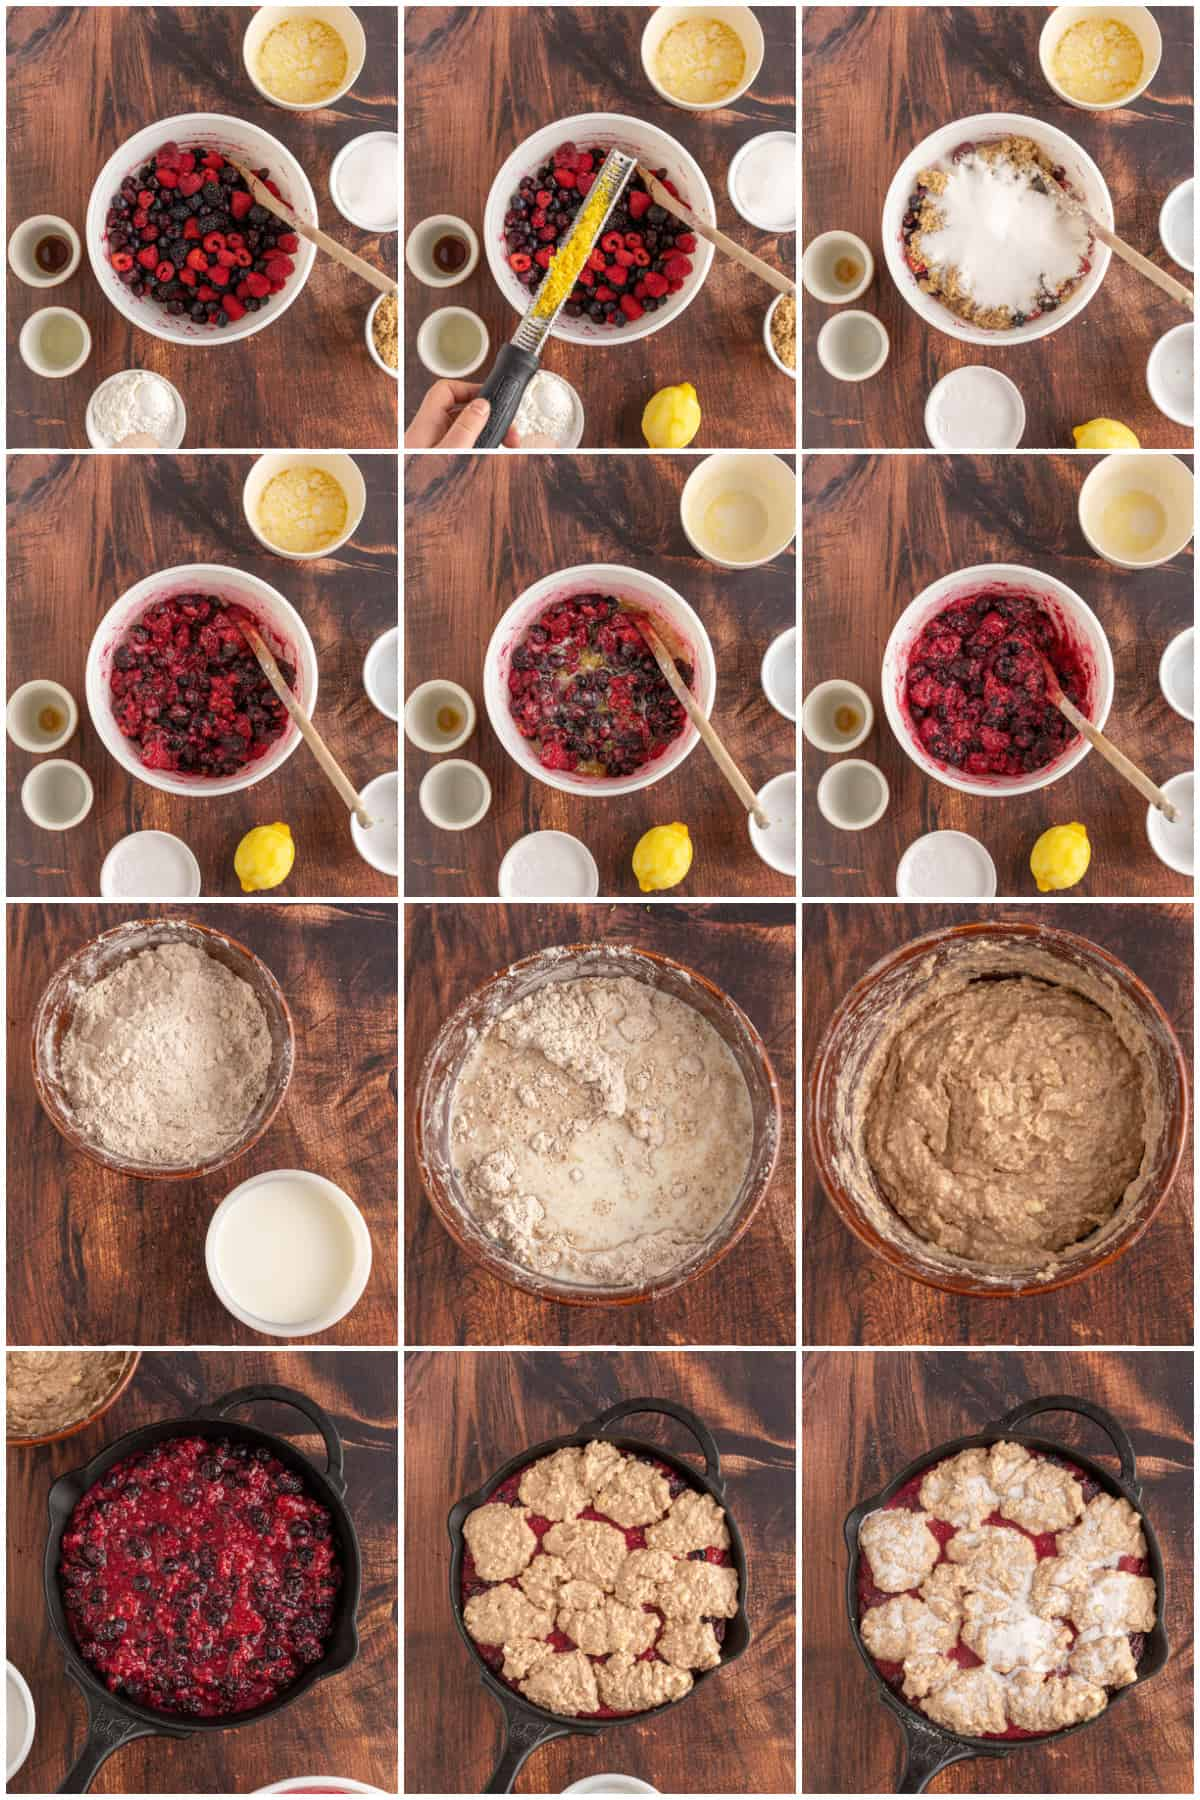 Step by step photos on how to make Berry Cobbler